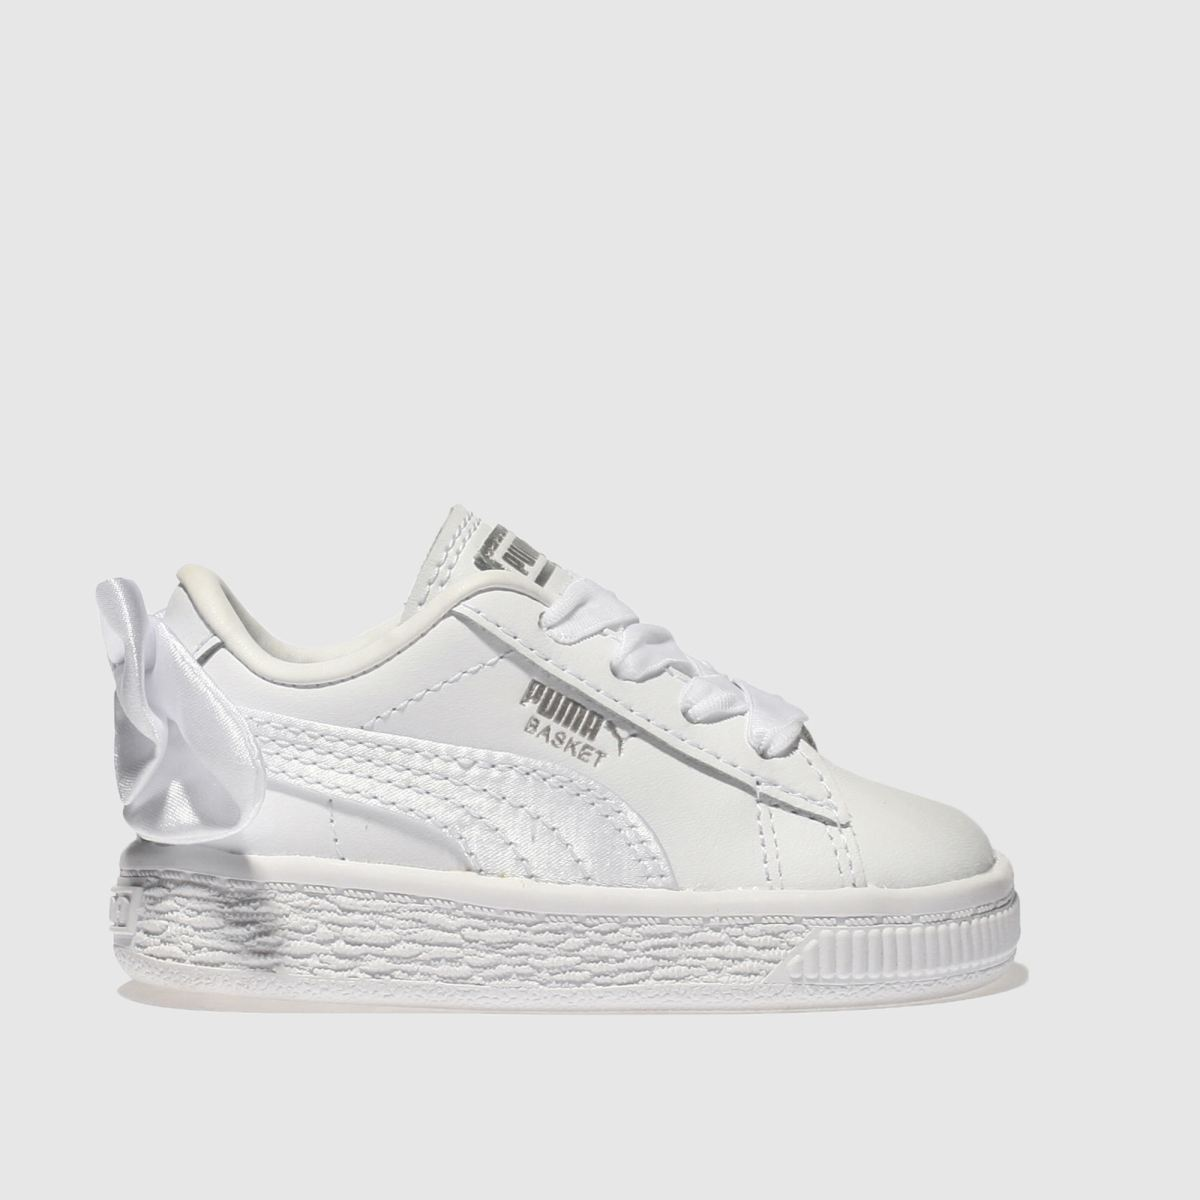 Puma White Basket Bow Girls Toddler Trainers